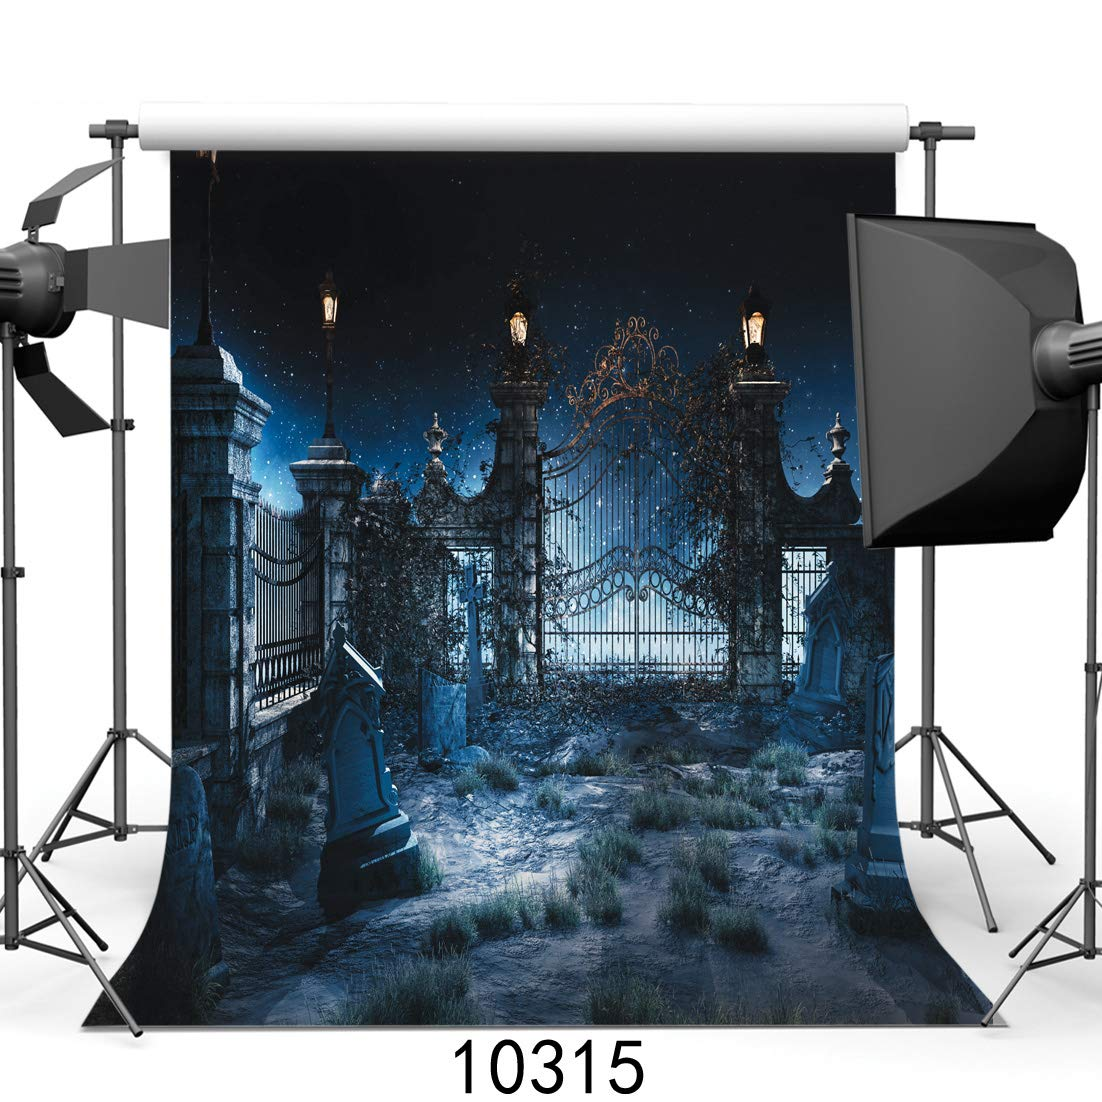 SJOLOON Halloween Night 10' x 10' Computer Printed Photography Backdrop Halloween Theme Photo Background JLT10315 by SJOLOON (Image #1)